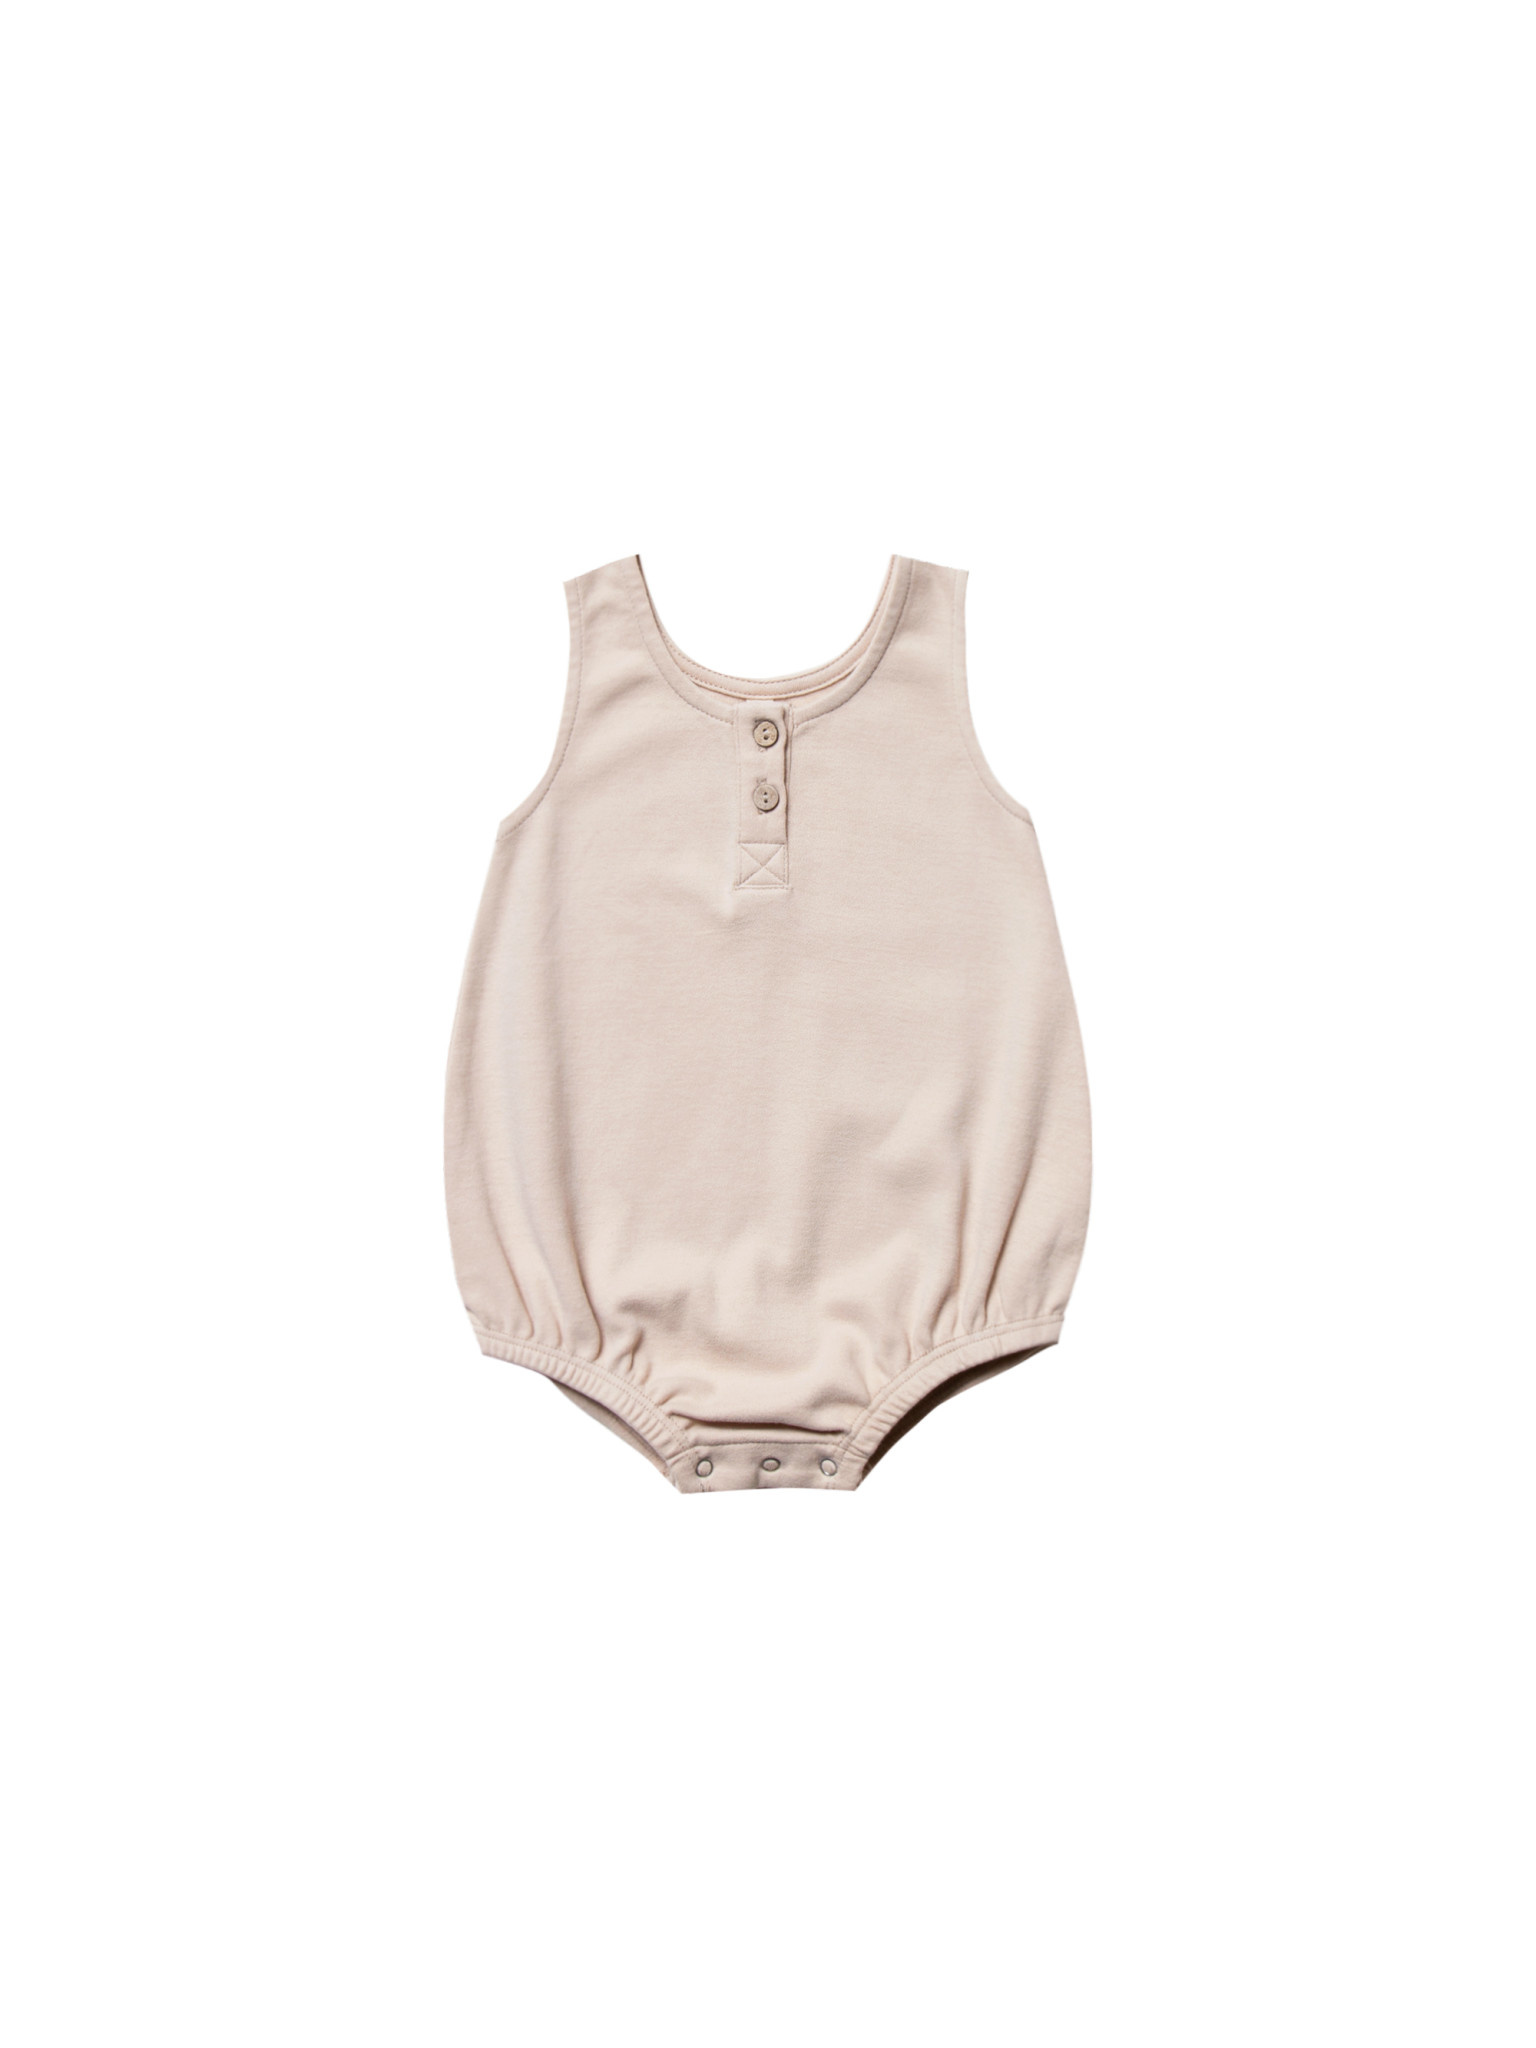 QUINCY MAE Organic Sleeveless Bubble